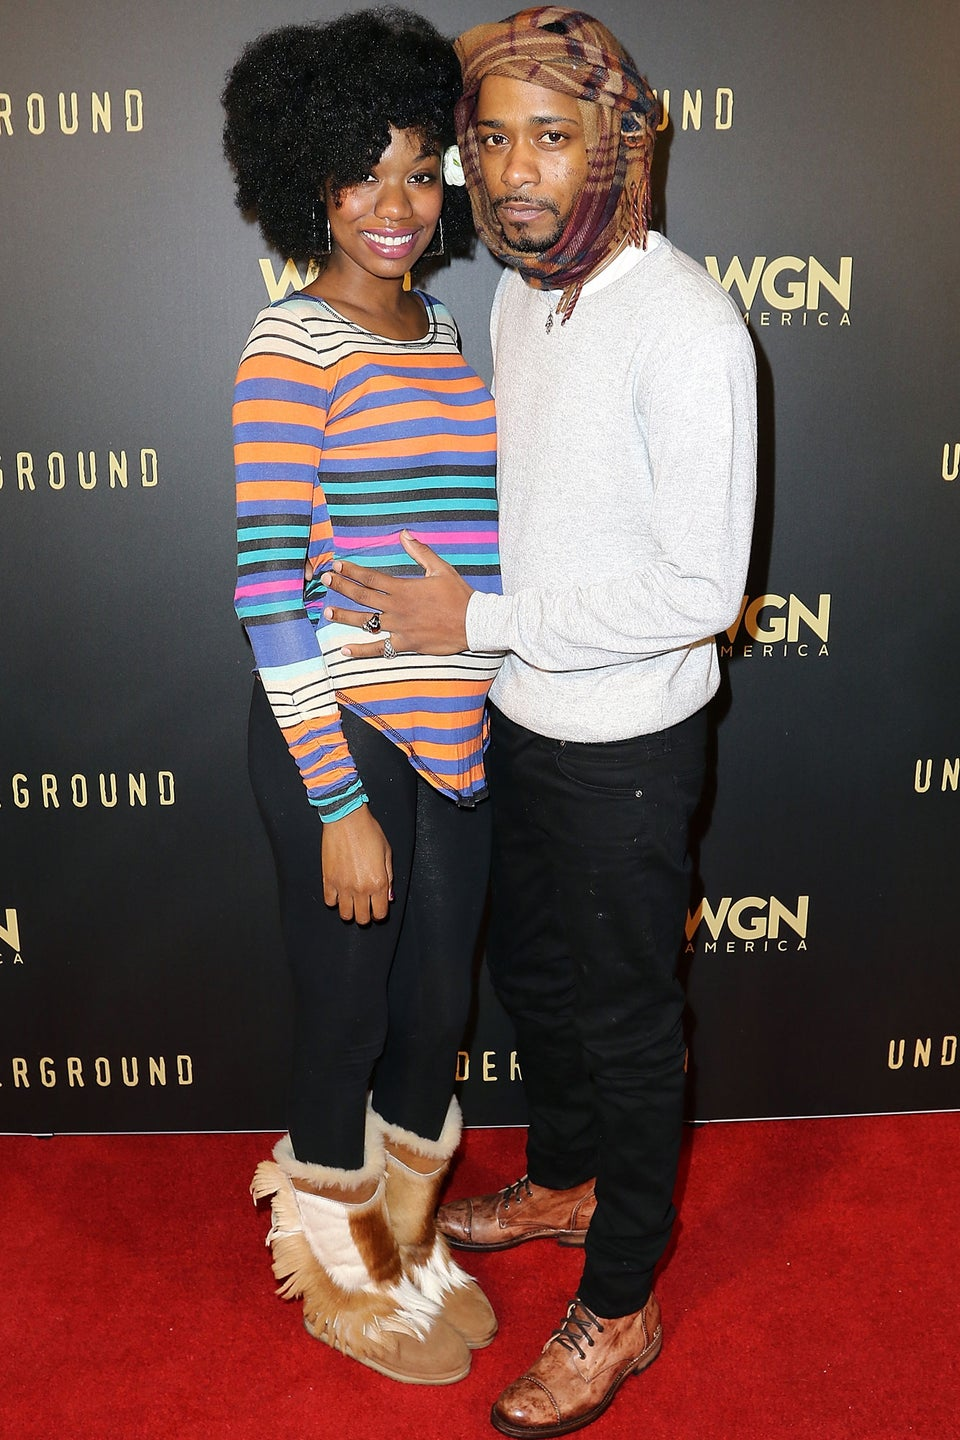 Lakeith Stanfield and Xosha Roquemore Expecting First Child